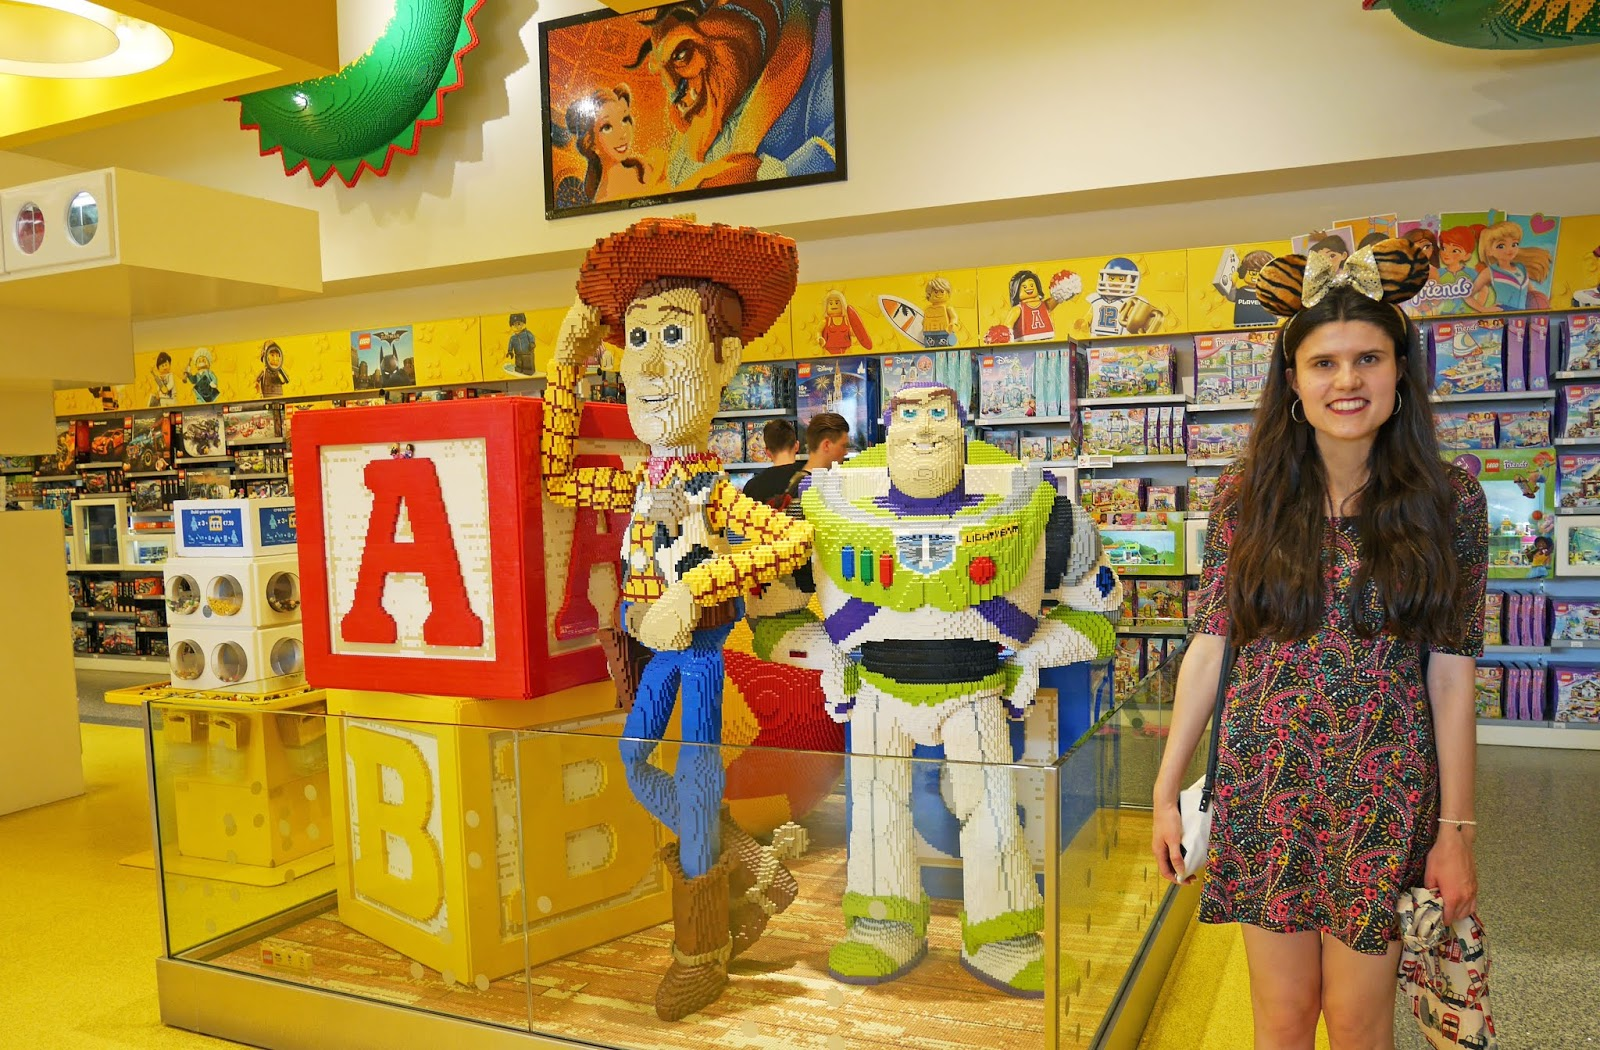 Lego Store at the Disney Village, Disneyland Paris